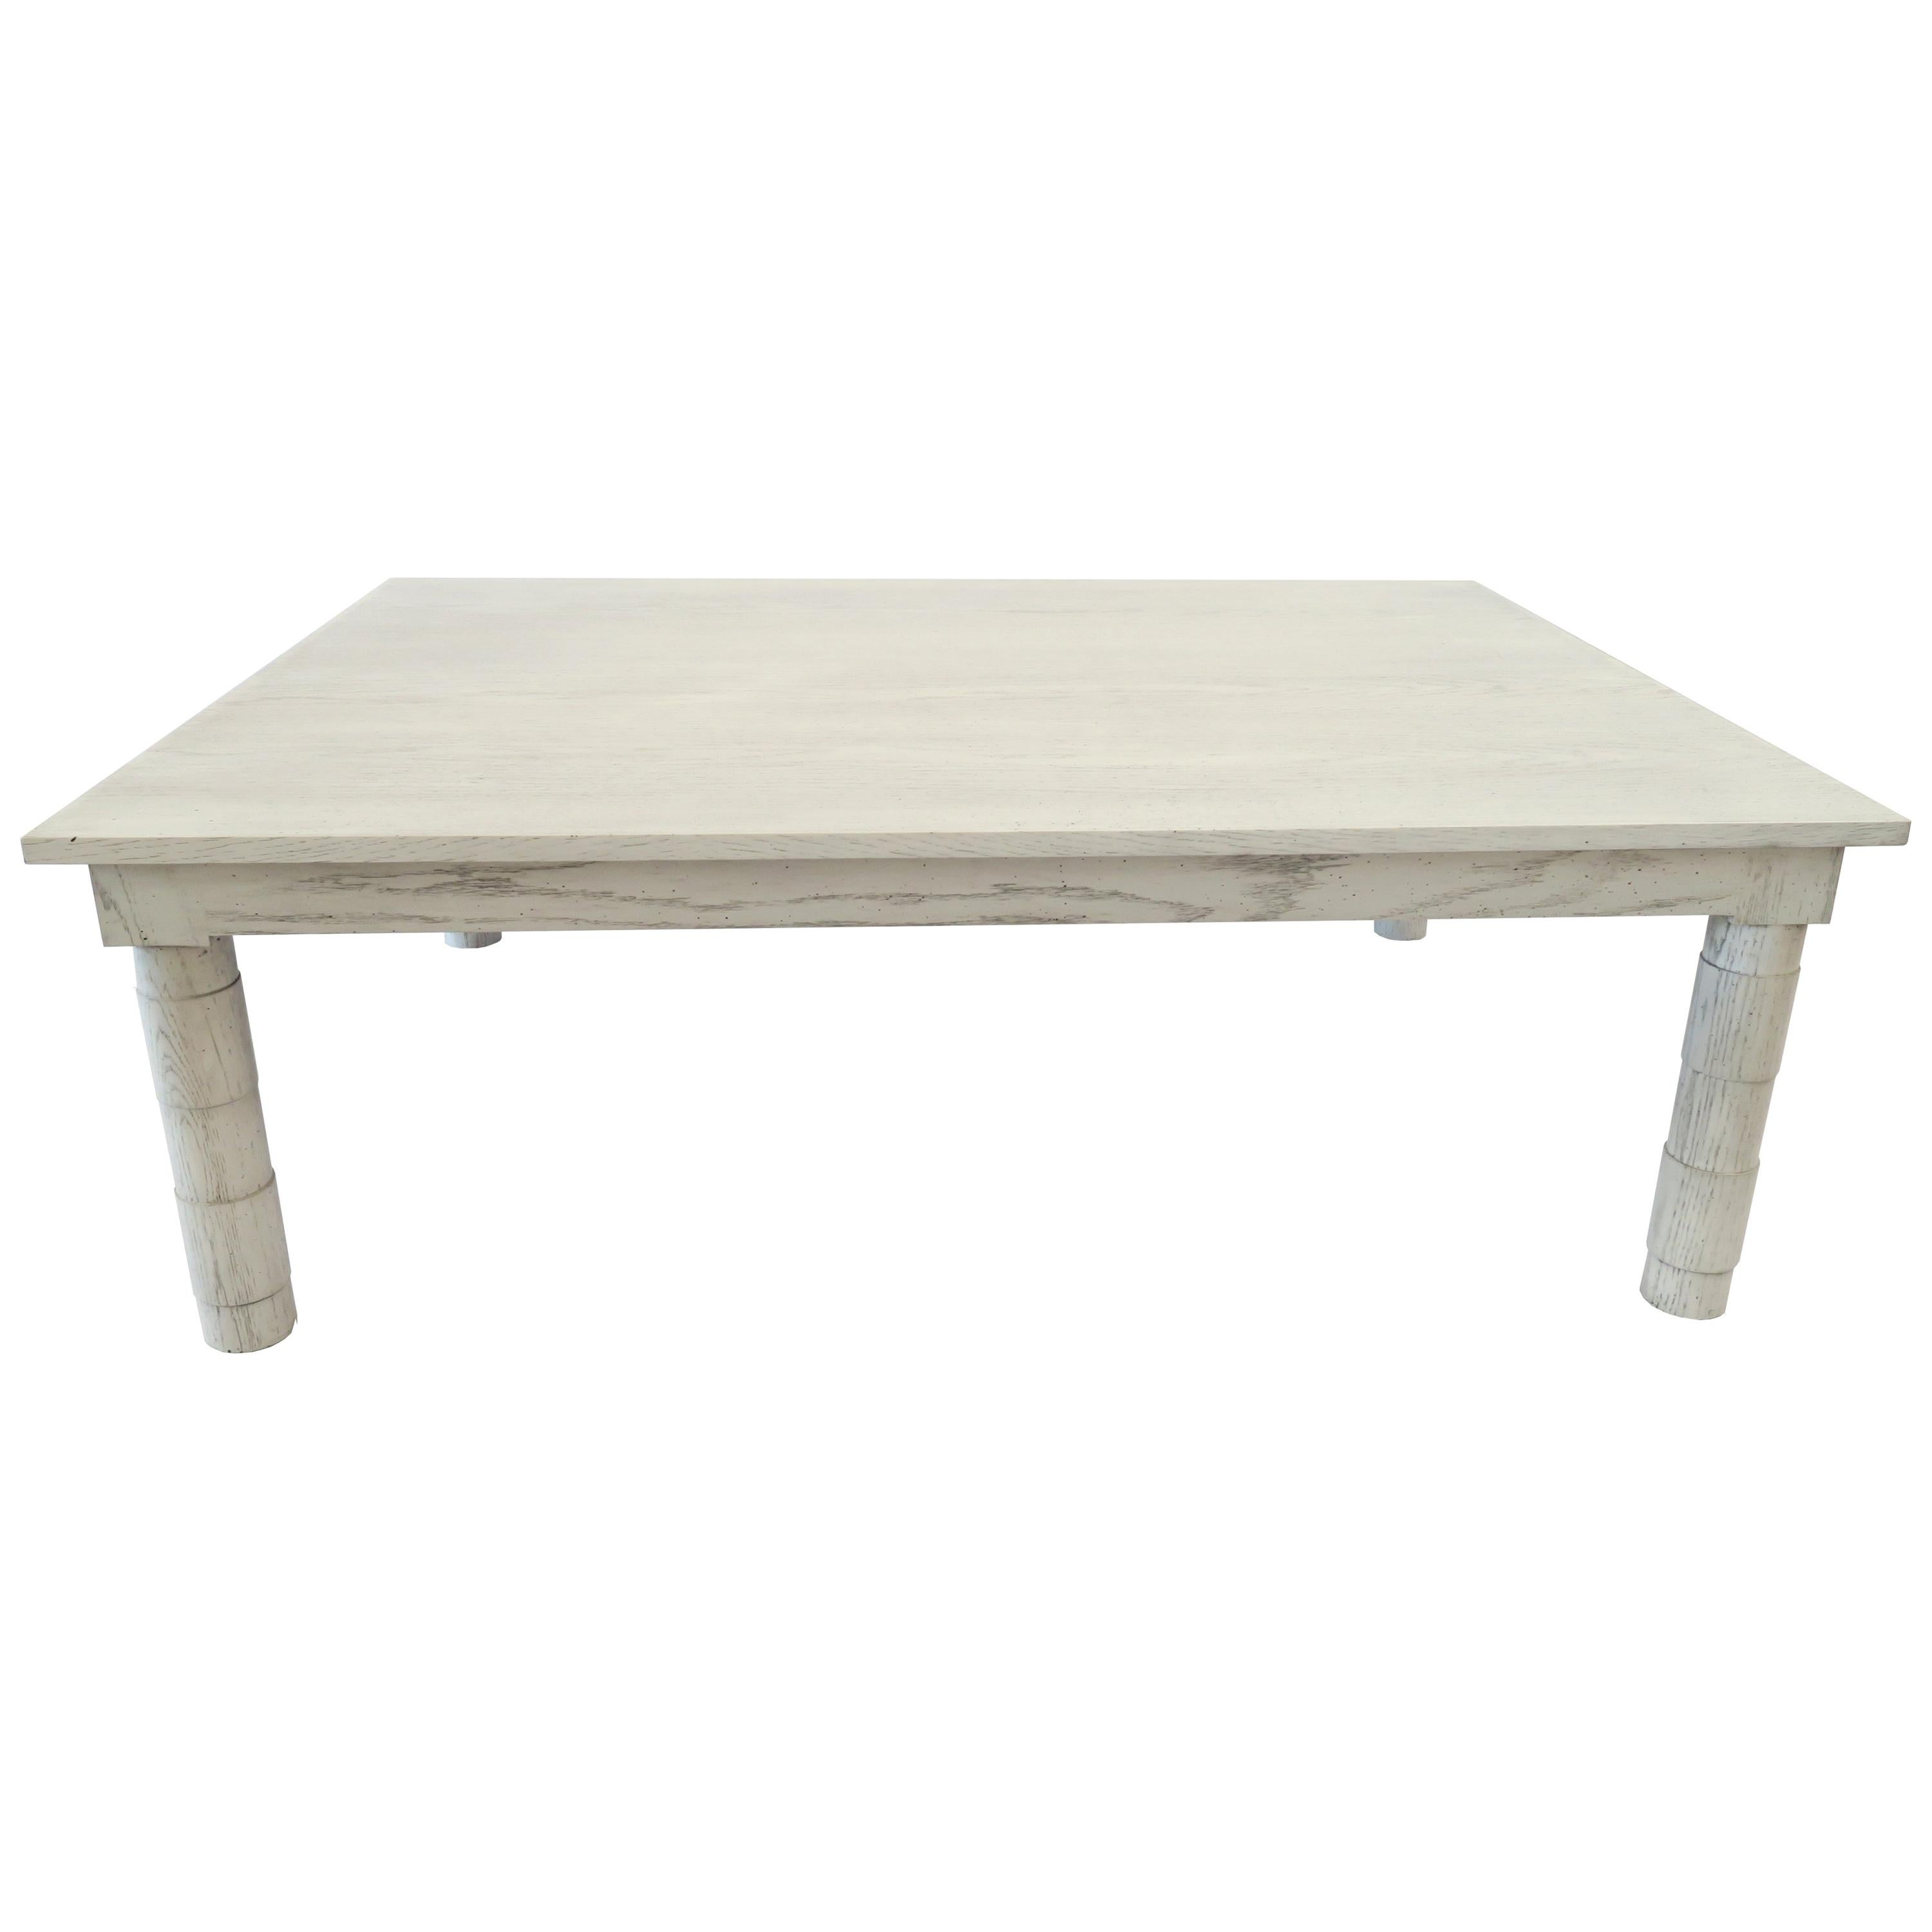 Transitional Turned Leg Coffee Table in Gray Oak by Martin and Brockett Gray